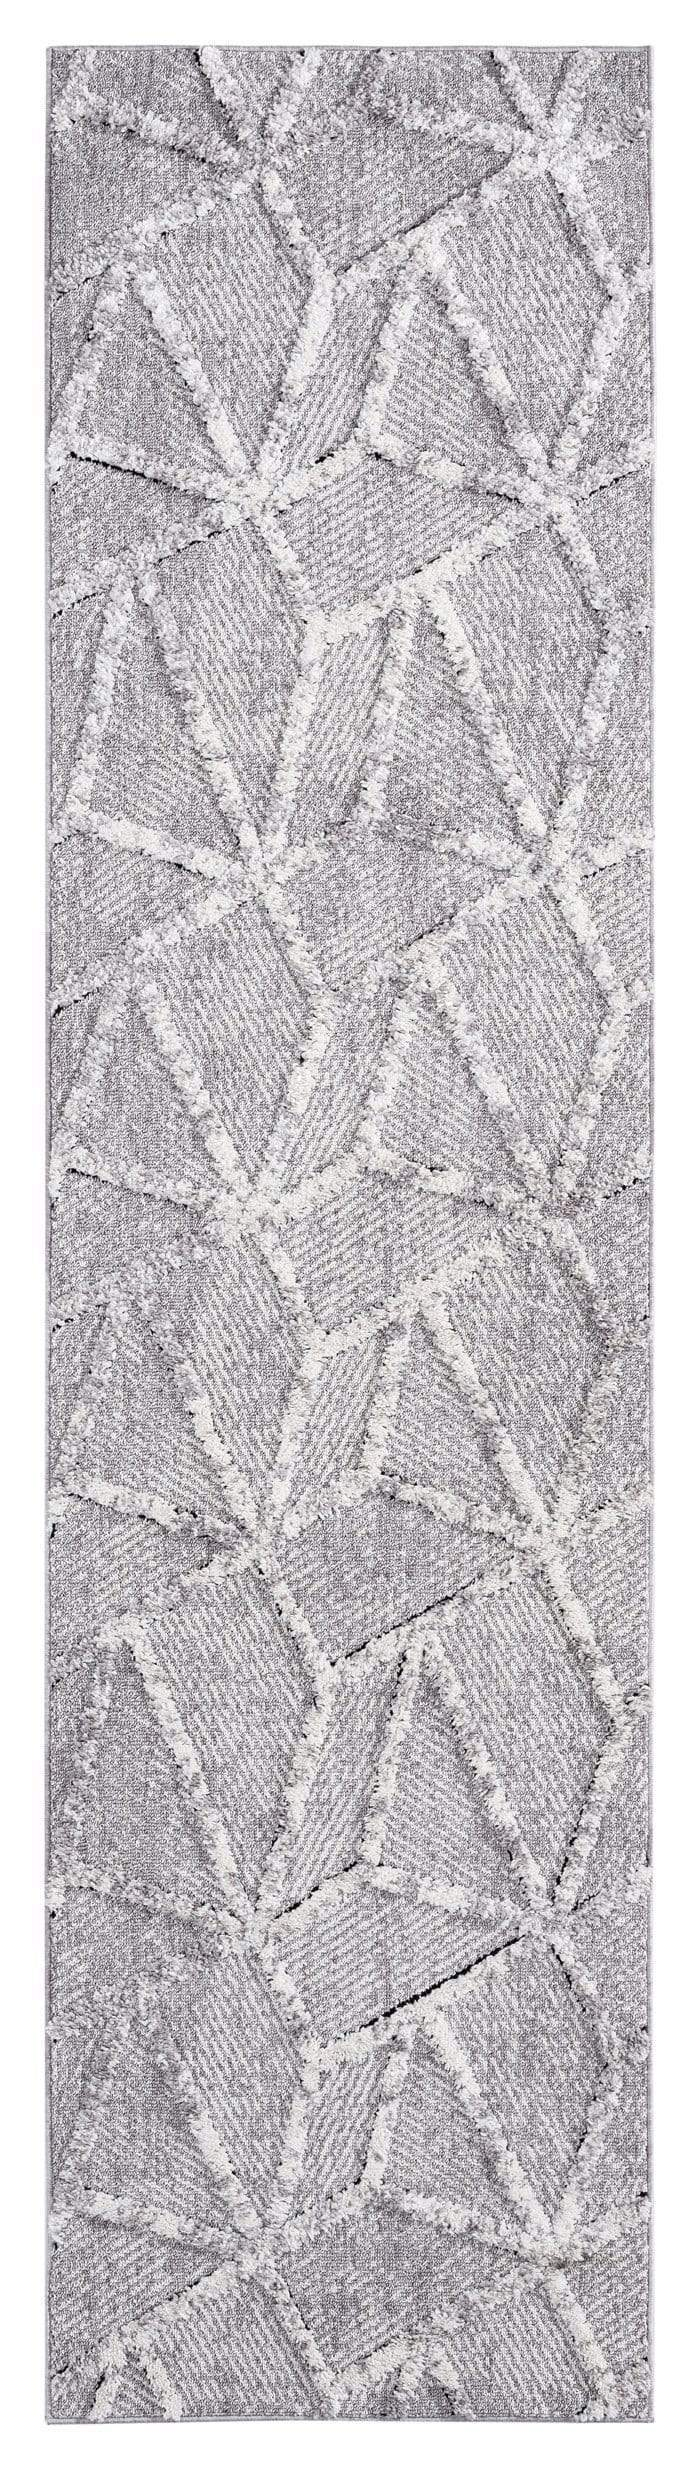 Soraya Blue Grey Abstract Textured Runner Rug